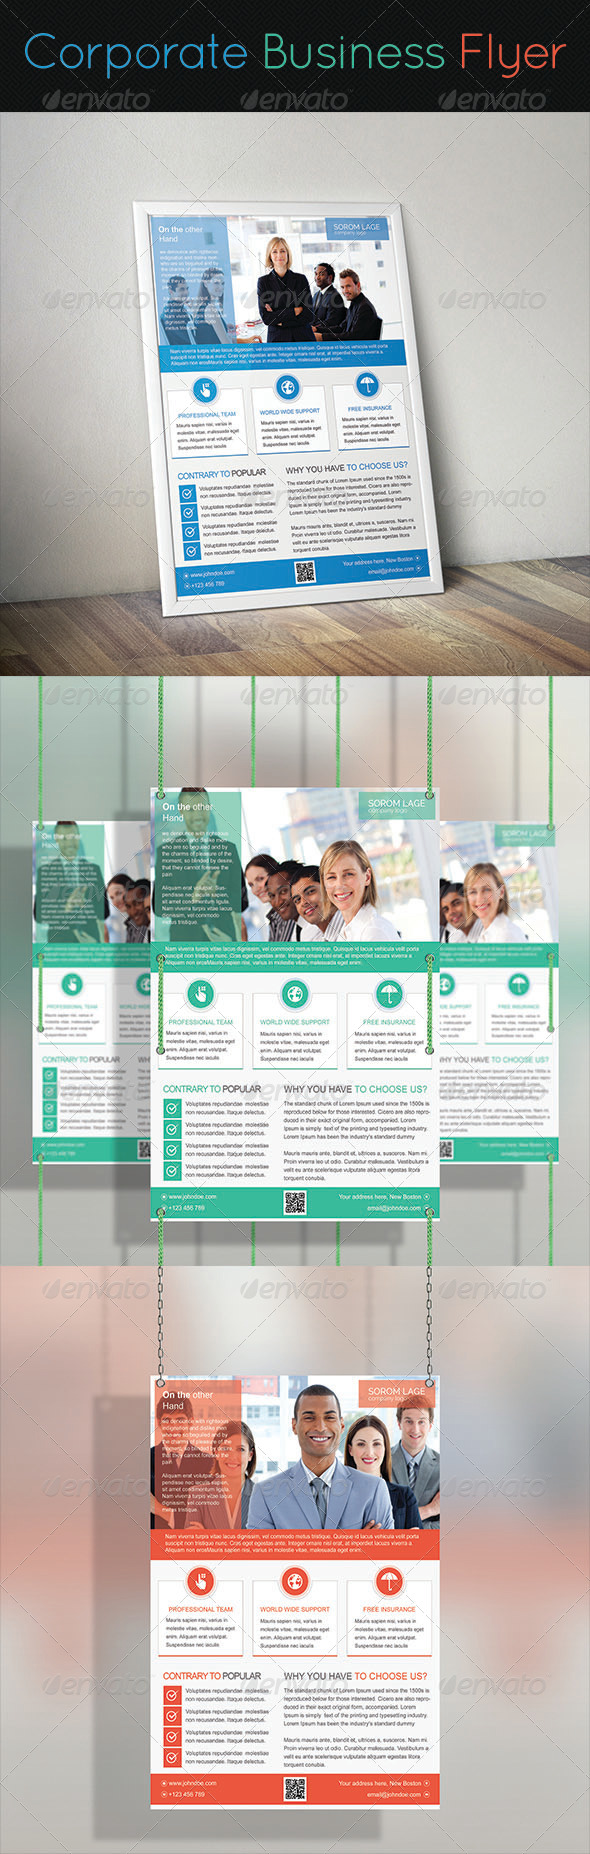 GraphicRiver Corporate Business Flyer 7640589